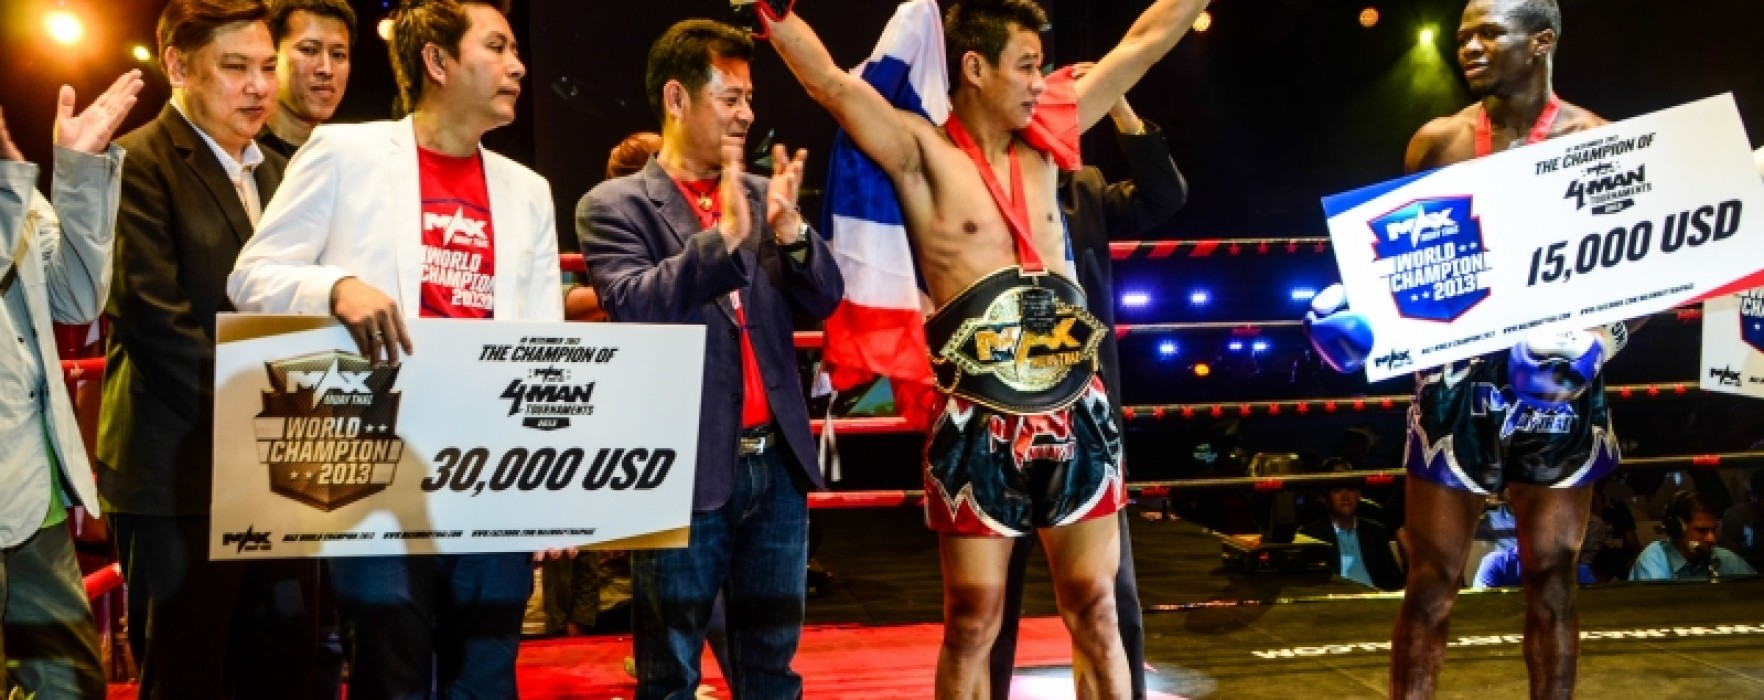 Results and Photo Gallery of Max Muay Thai Khon Kaen 10-12-2013